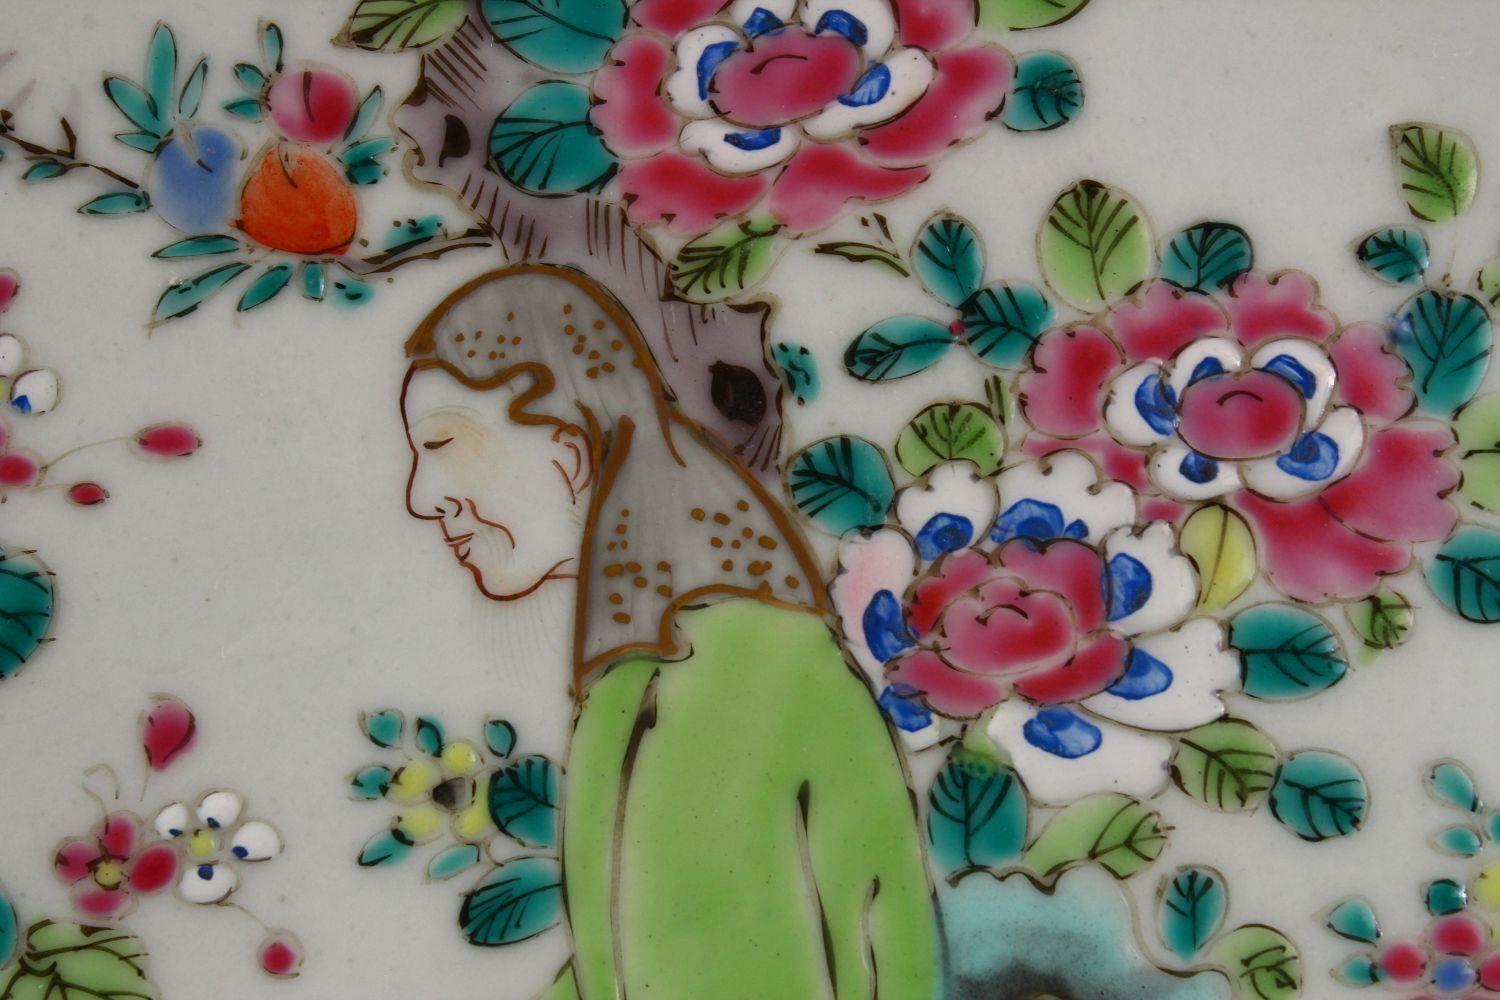 A 19TH CENTURY CHINESE FAMILLE ROSE PORCELAIN PLATE OF SCHOLARS, the decoration depicting a - Image 6 of 9